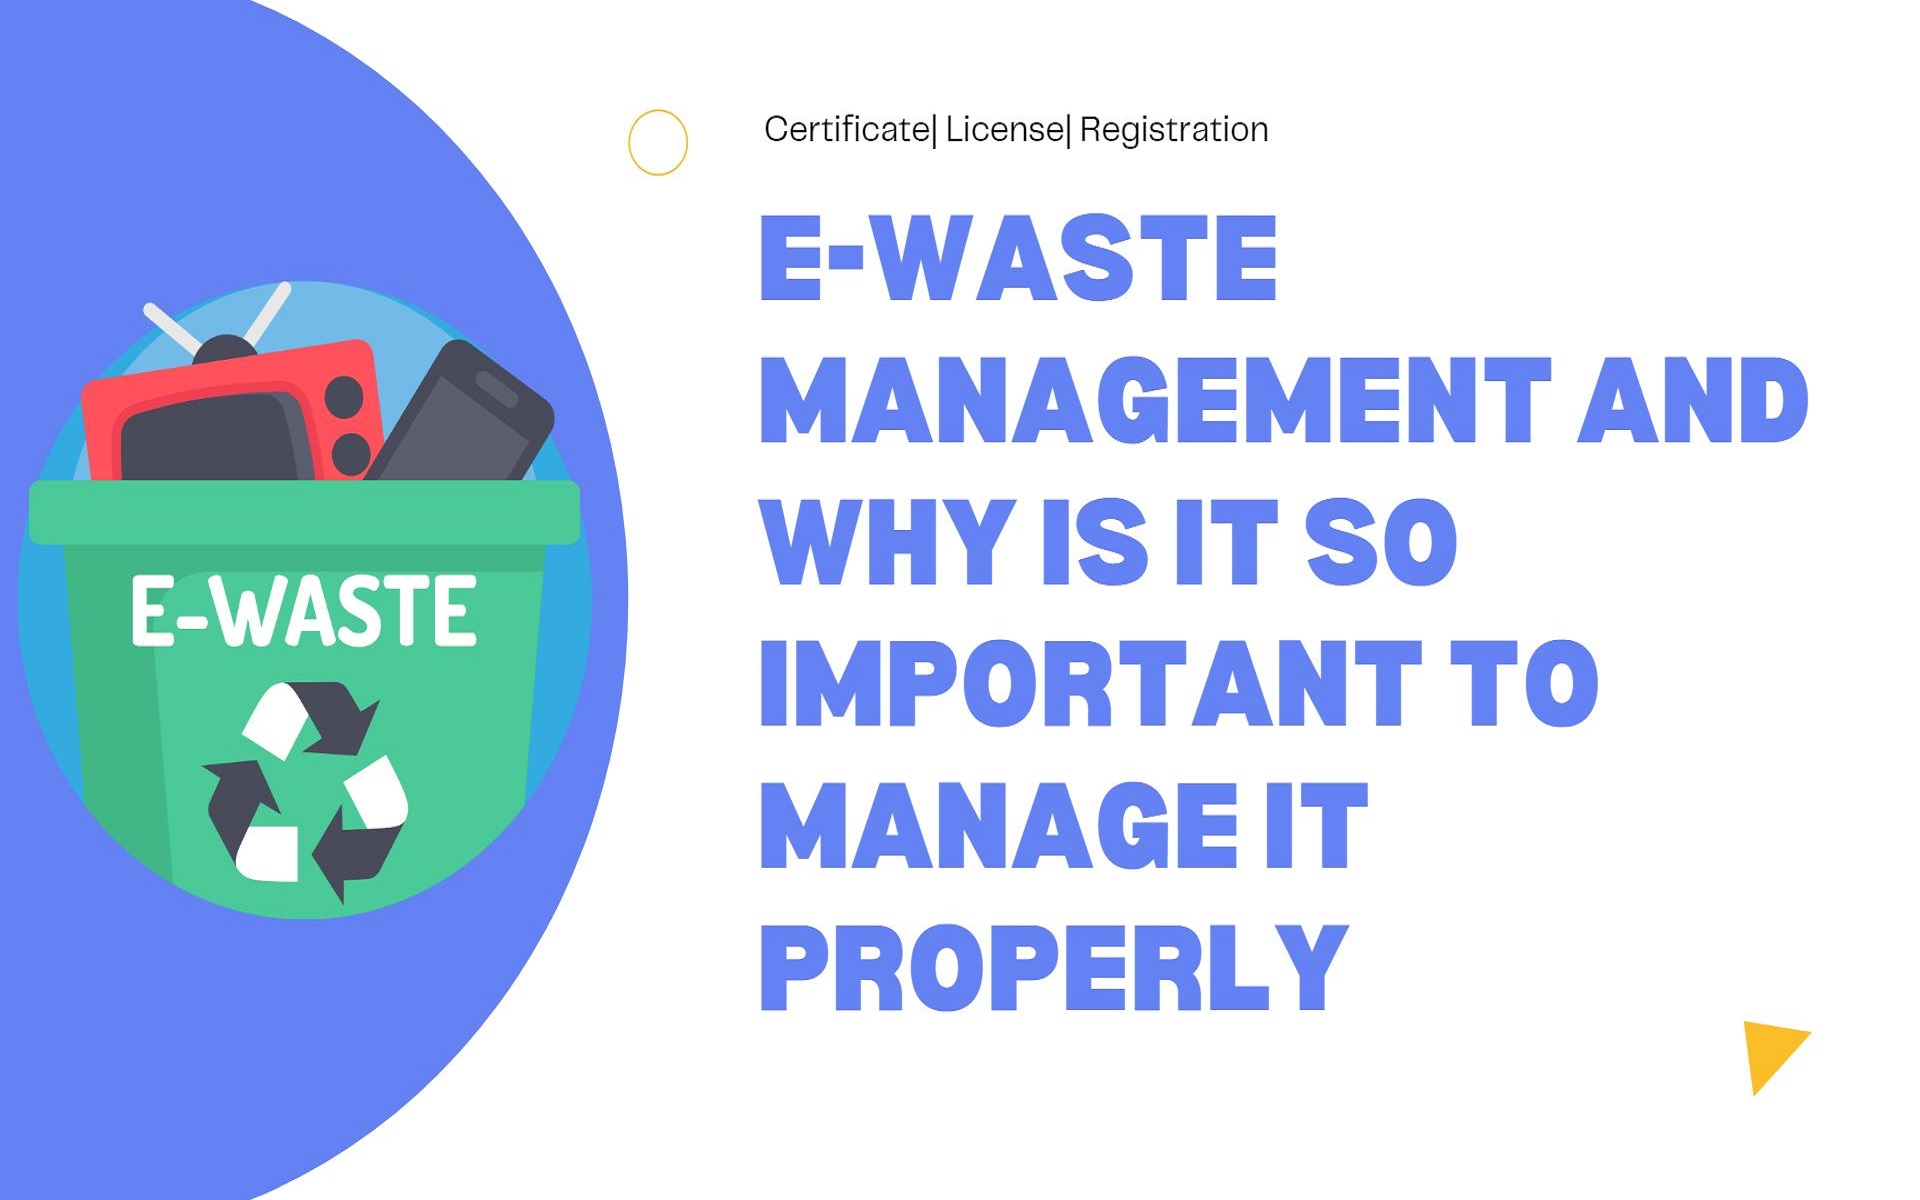 E-Waste Management and Why Is It So Important To Manage It Properly